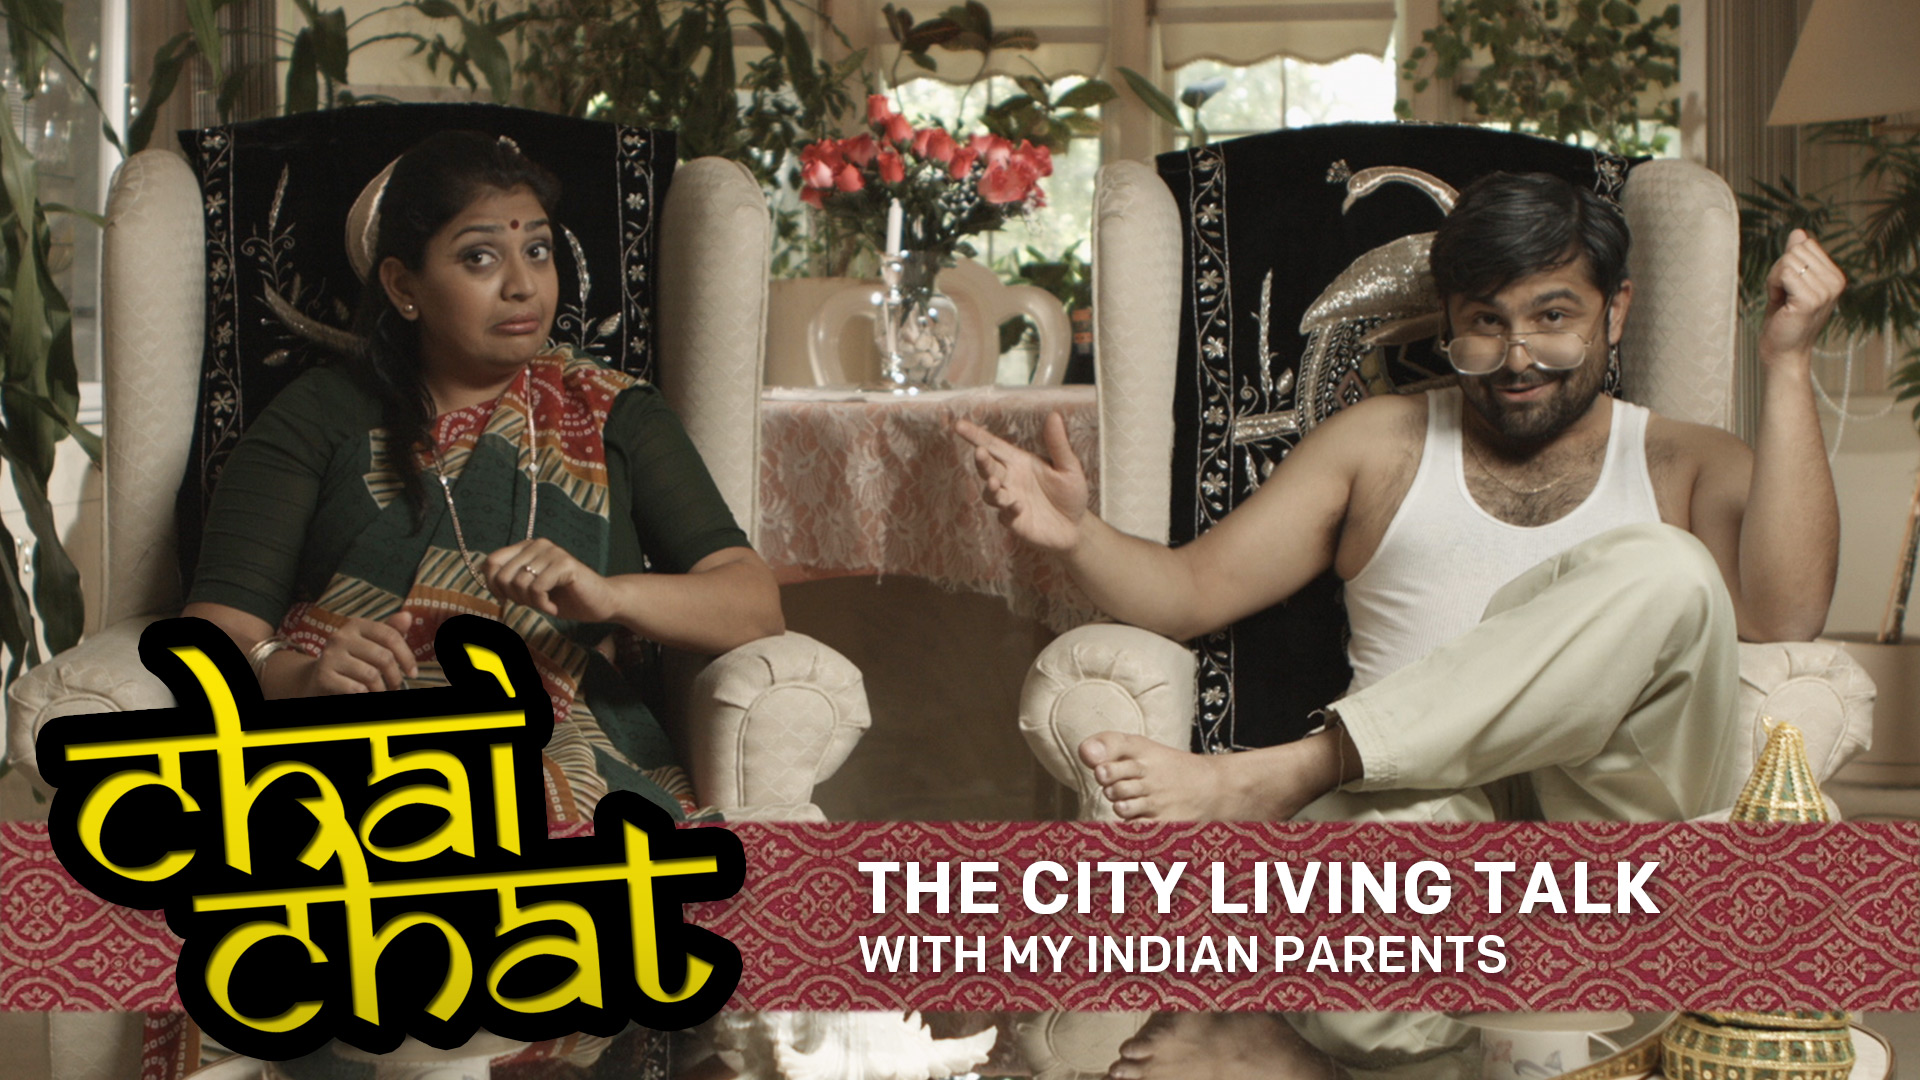 Chai Chat: The City Living Talk - With My Indian Parents